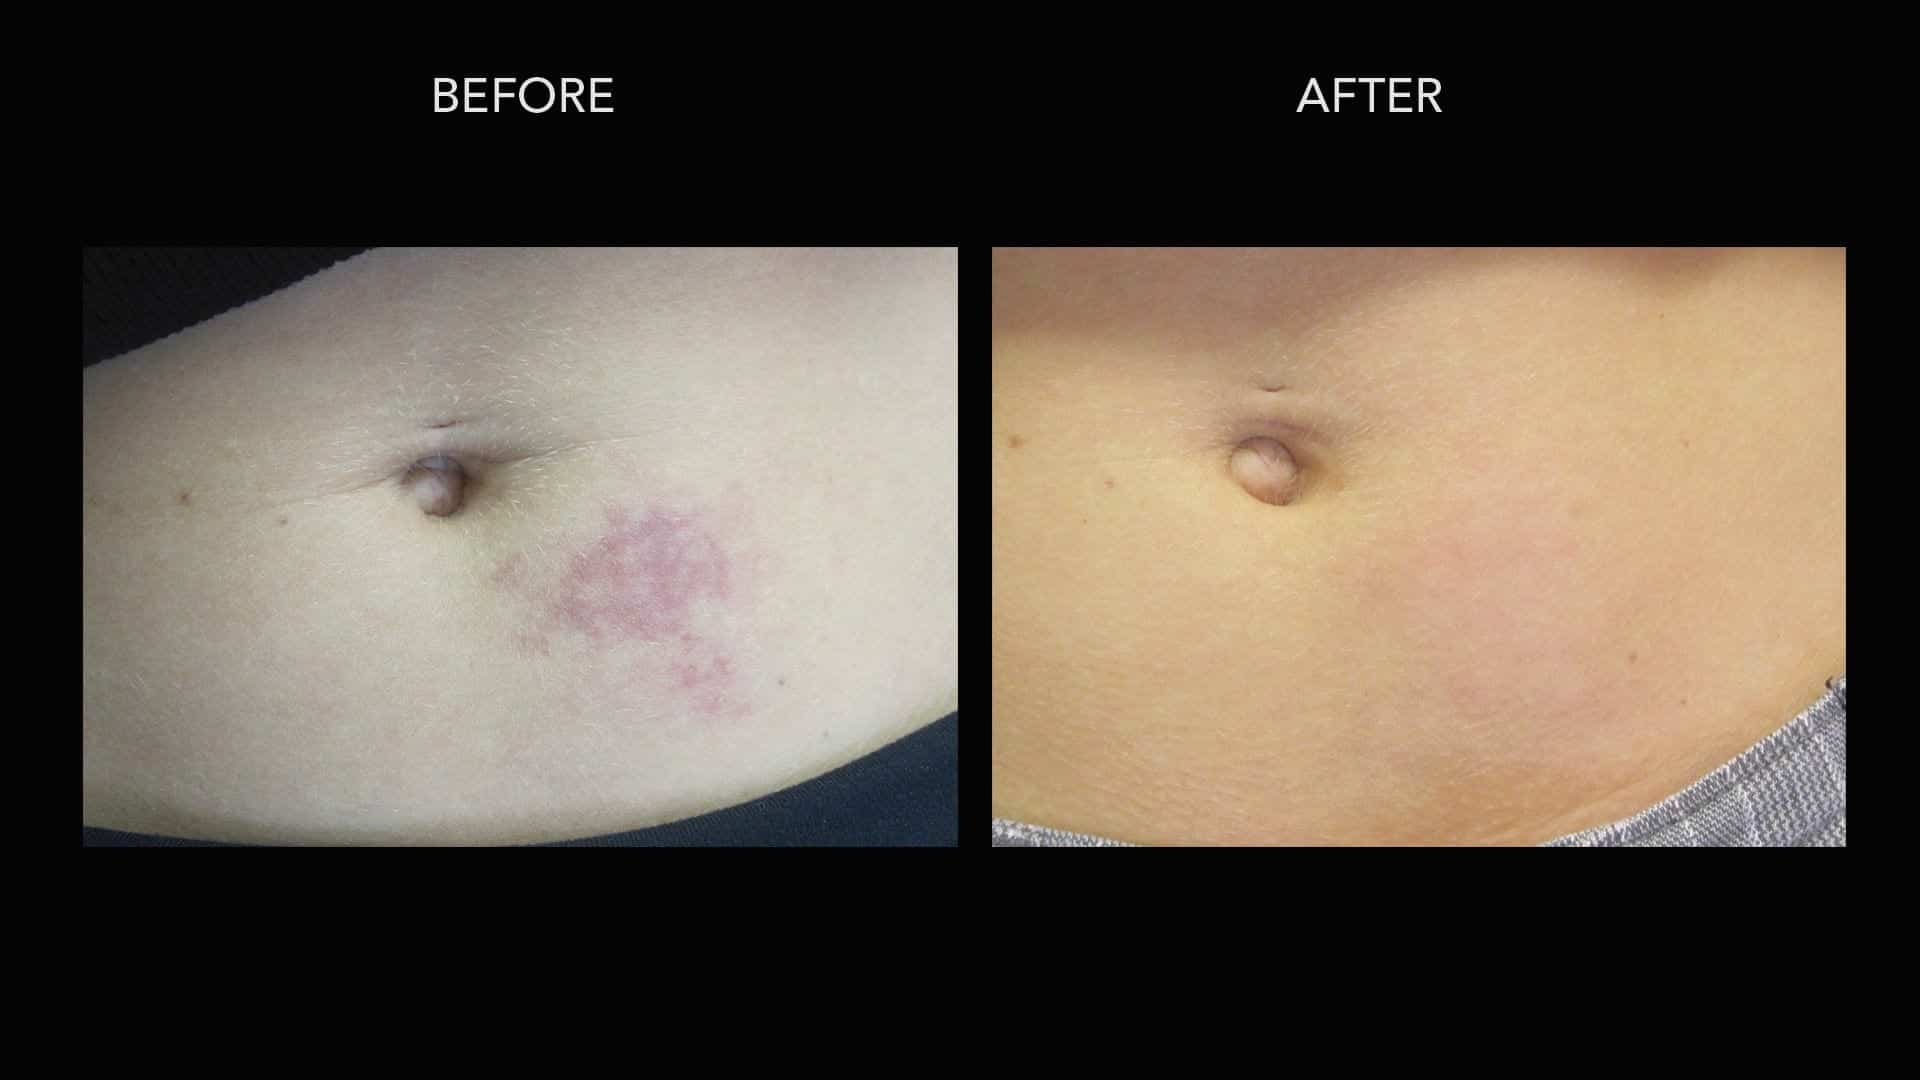 V Beam before and after photo of a birthmark treatment by Dr. Umar.*